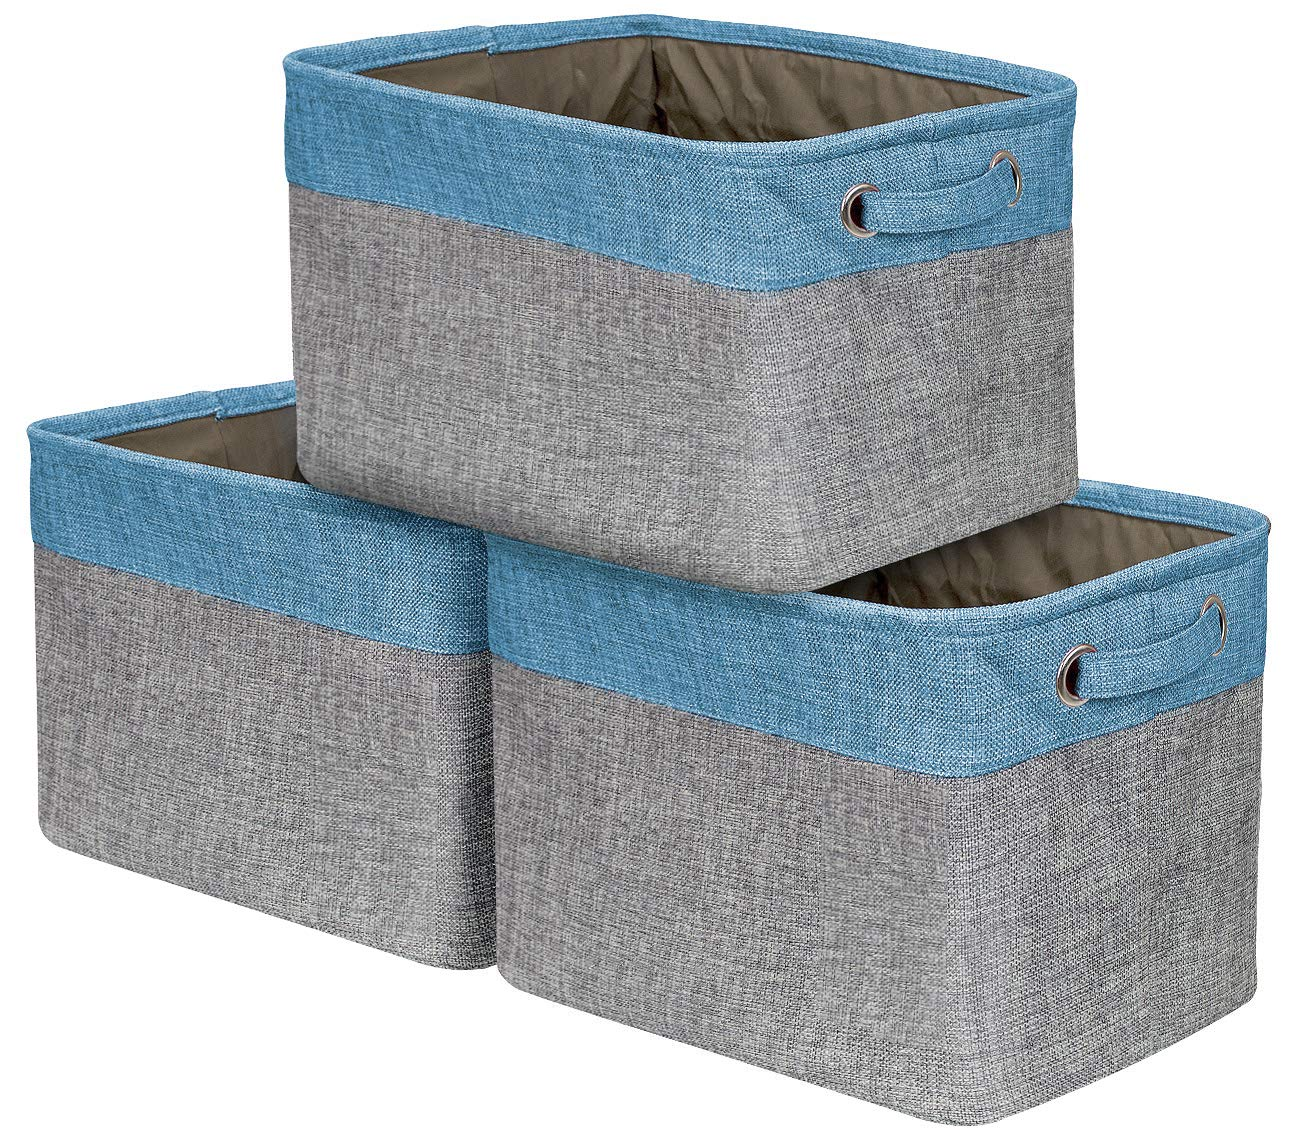 Sorbus Storage Large Basket Set [3-Pack] - 15 L x 10 W x 9 H - Big Rectangular Fabric Collapsible Organizer Bin Carry Handles Linens, Towels, Toys, Clothes, Kids Room, Nursery (Aqua)